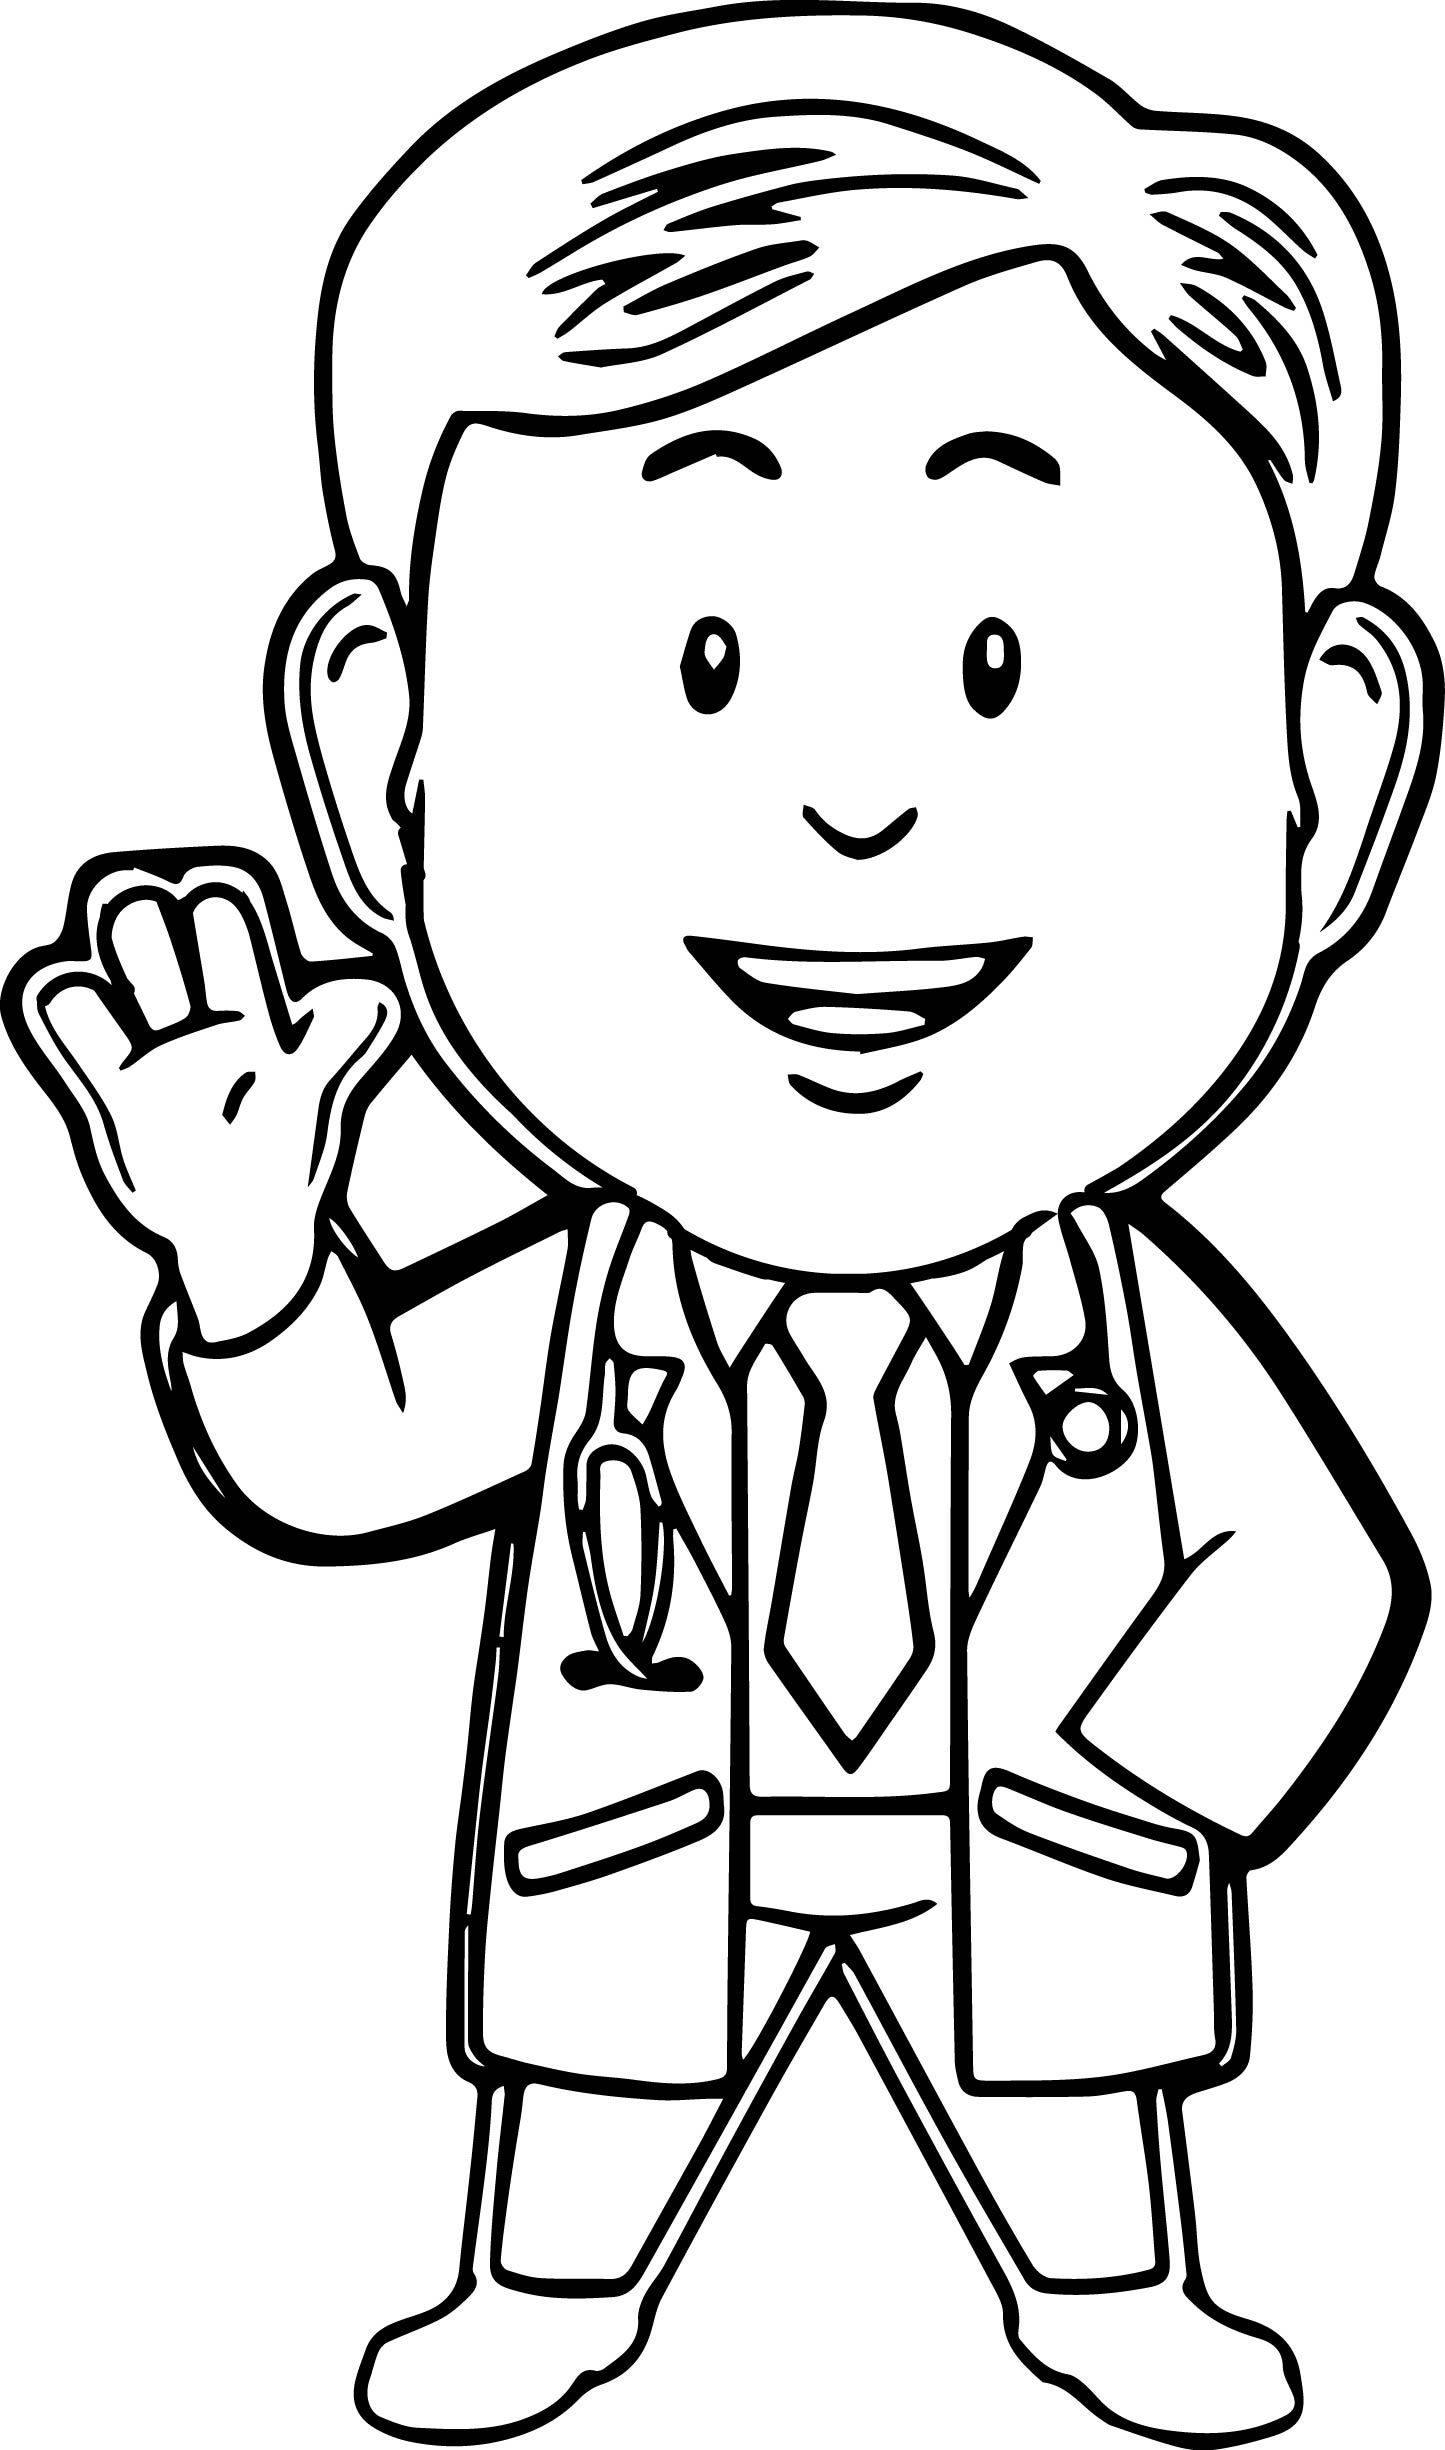 doctor coloring pages Doctor Coloring Pages | wecoloringpage | Coloring pages  doctor coloring pages